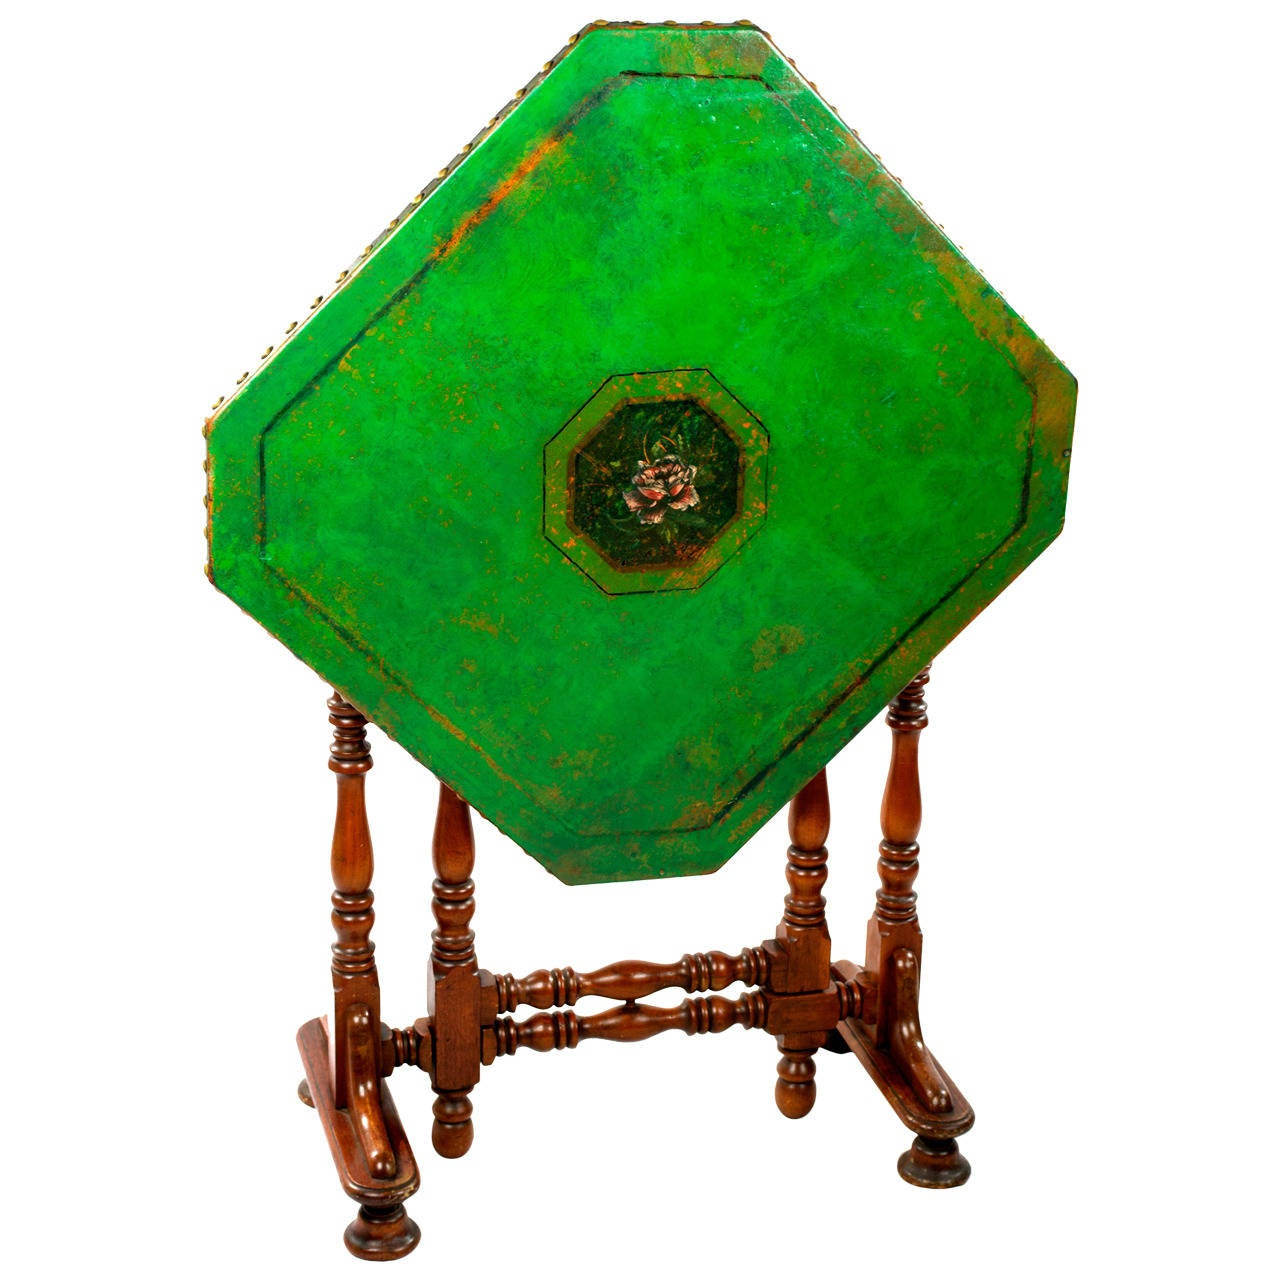 English Folding Green Leather Game Table 1